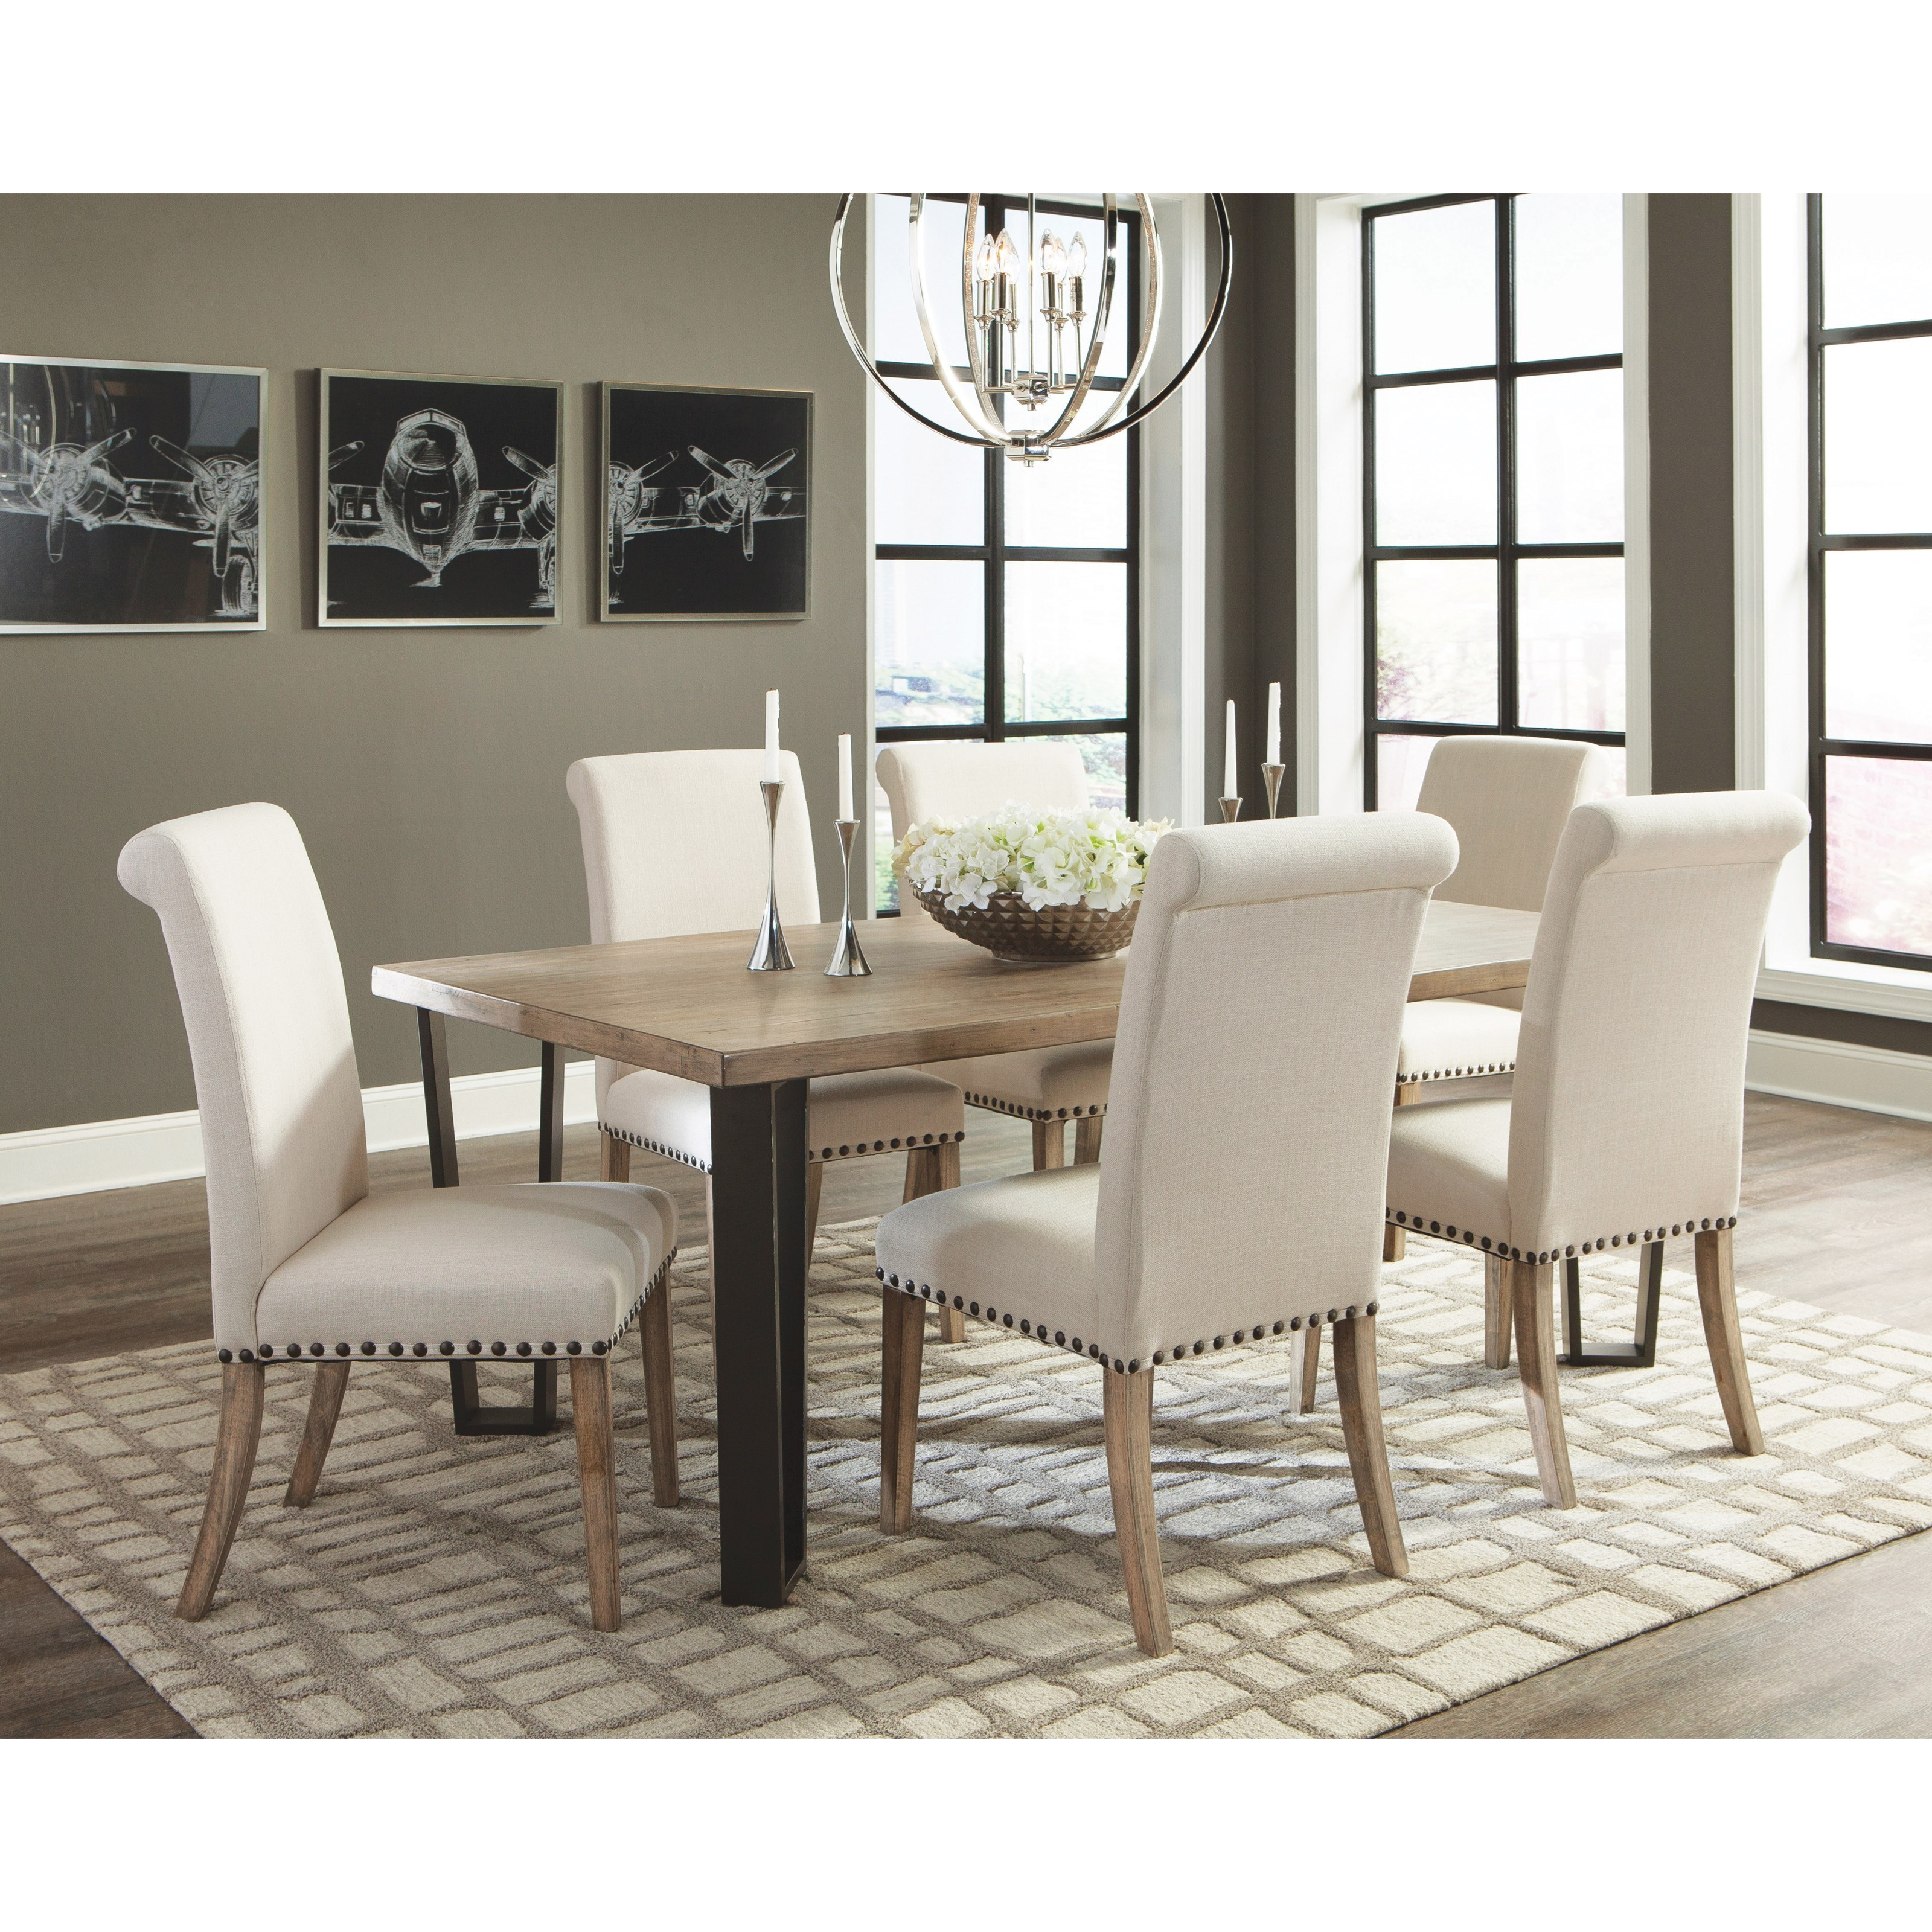 Coaster Taylor 7pc Vintage Rustic Pine Dining Table Set